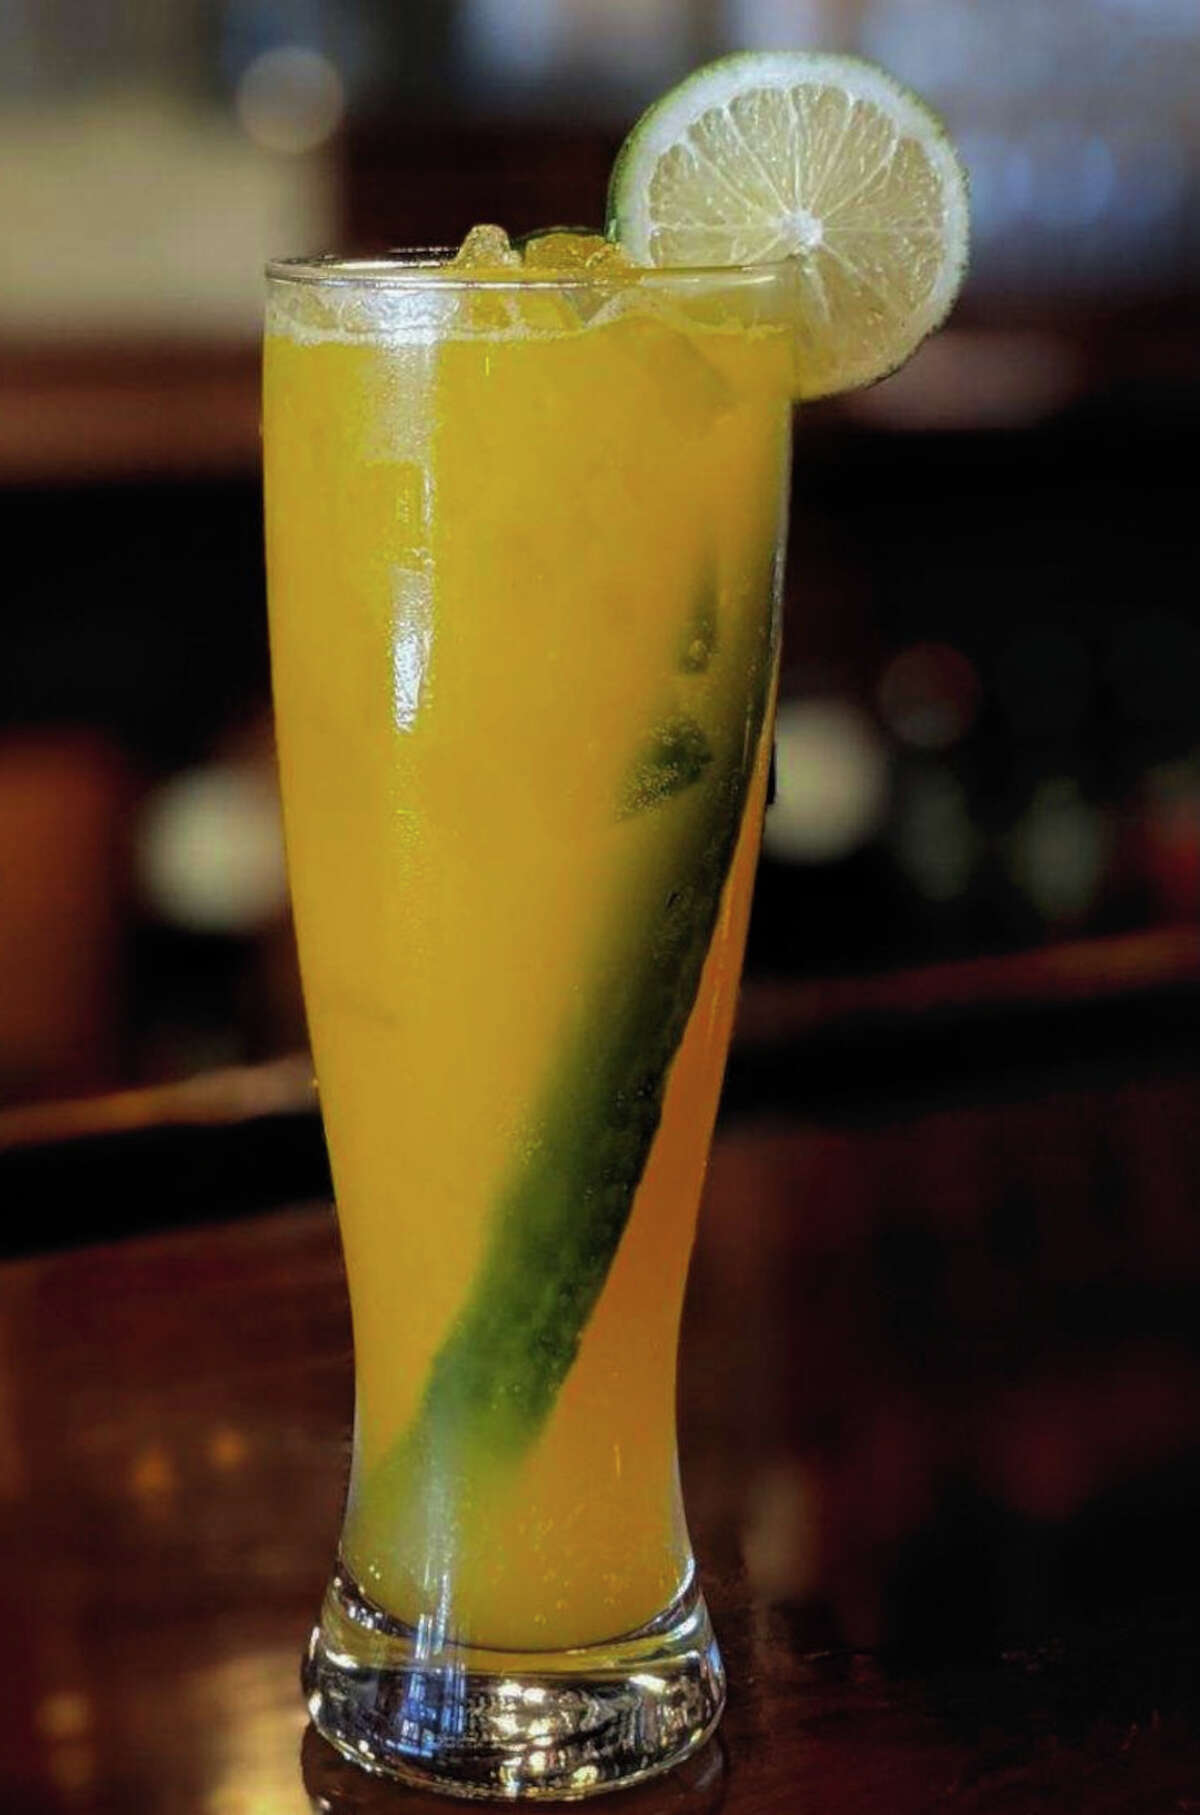 The Mango Mule is among the NA cocktails offered by The Merc in Saratoga Springs. (Provided photo.)